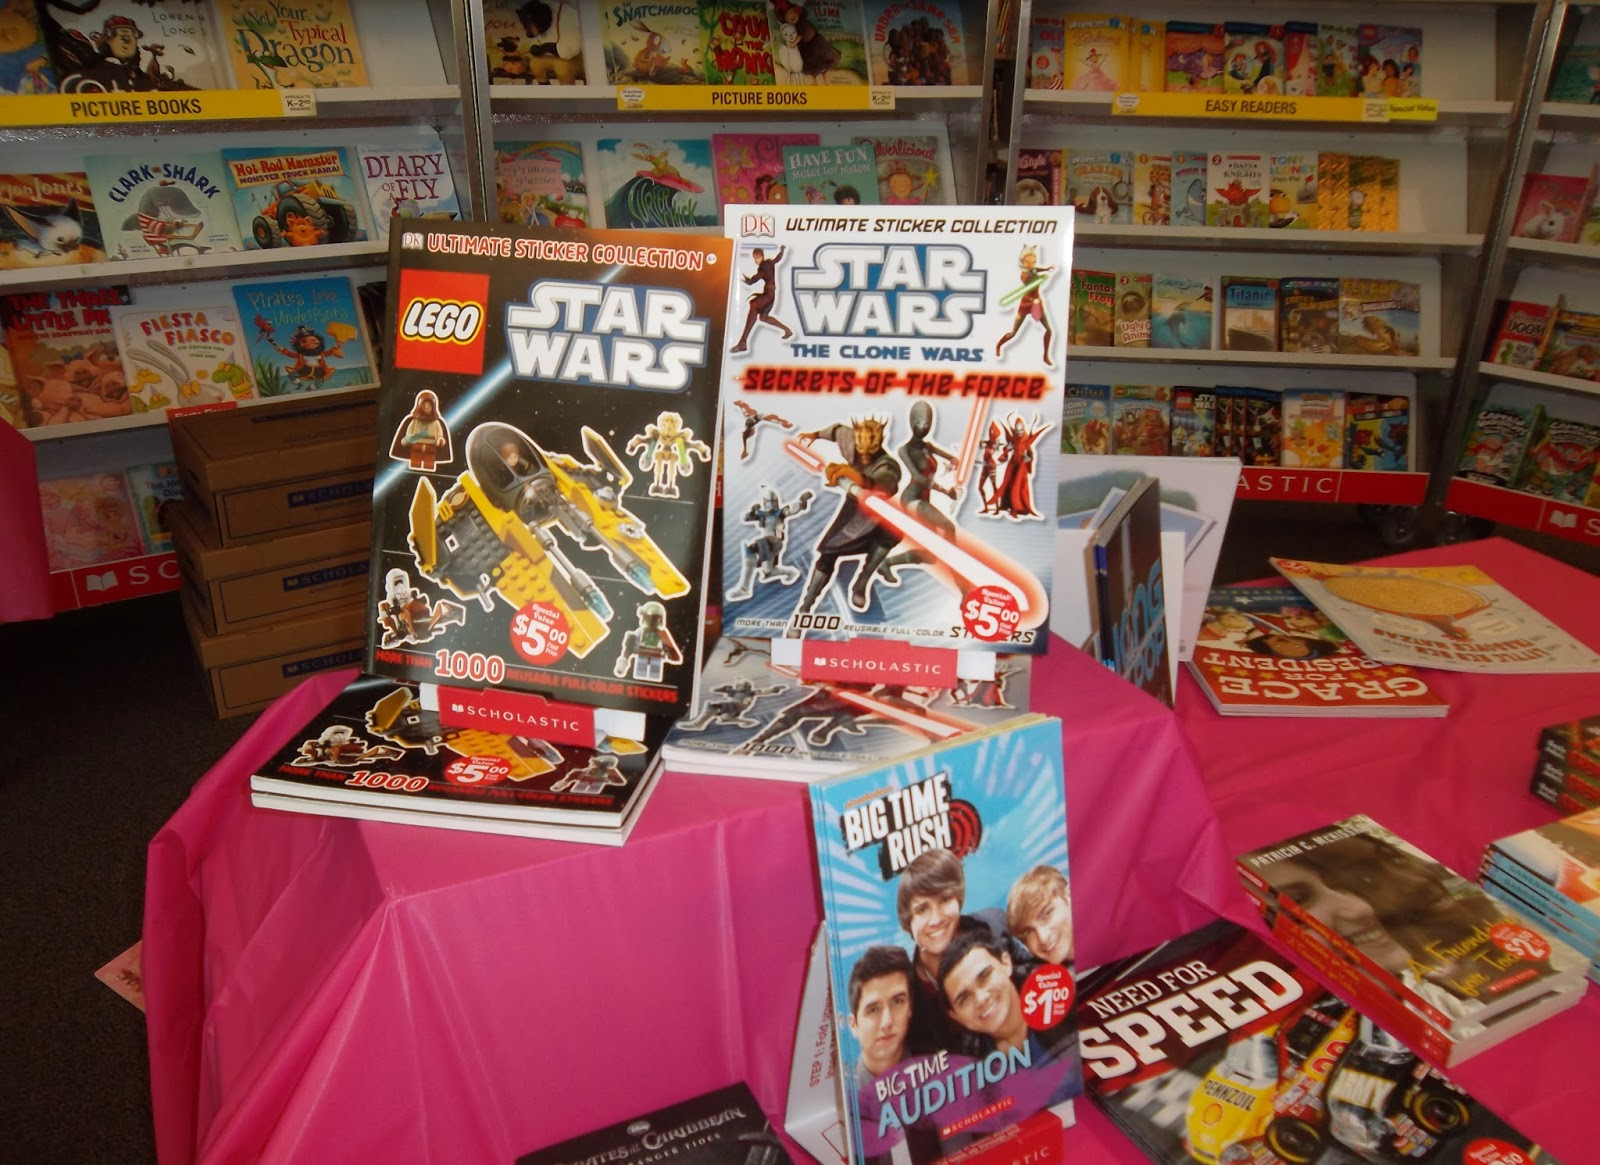 Books put out on a table-top display for a Scholastic Book Fair. Additional books are arranged face-out on shelves in the background.